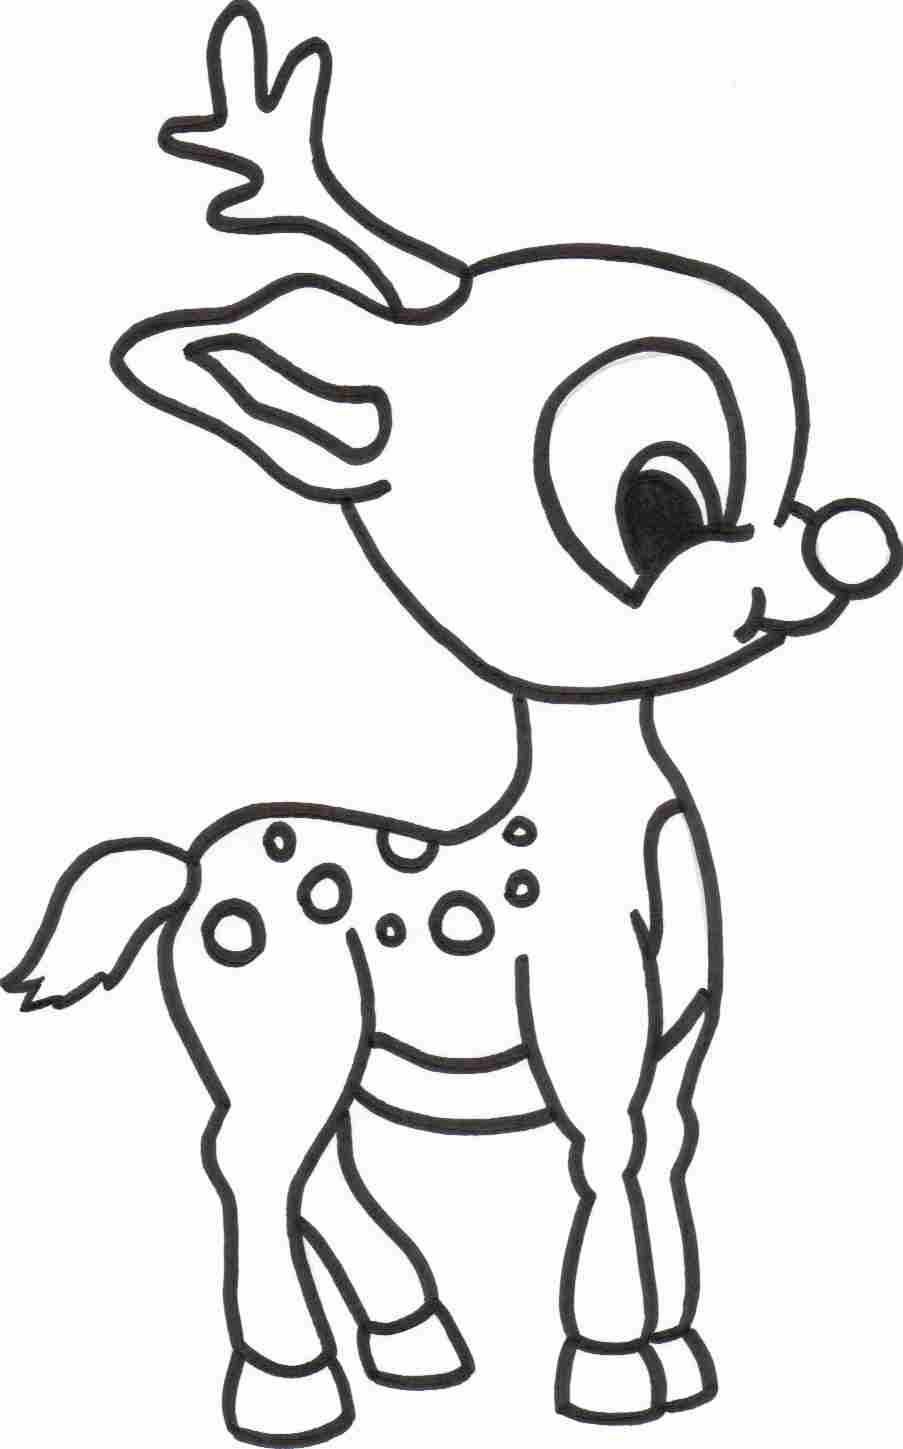 Christmas Reindeer Coloring With Free Printable Pages For Kids Sketch Pinterest